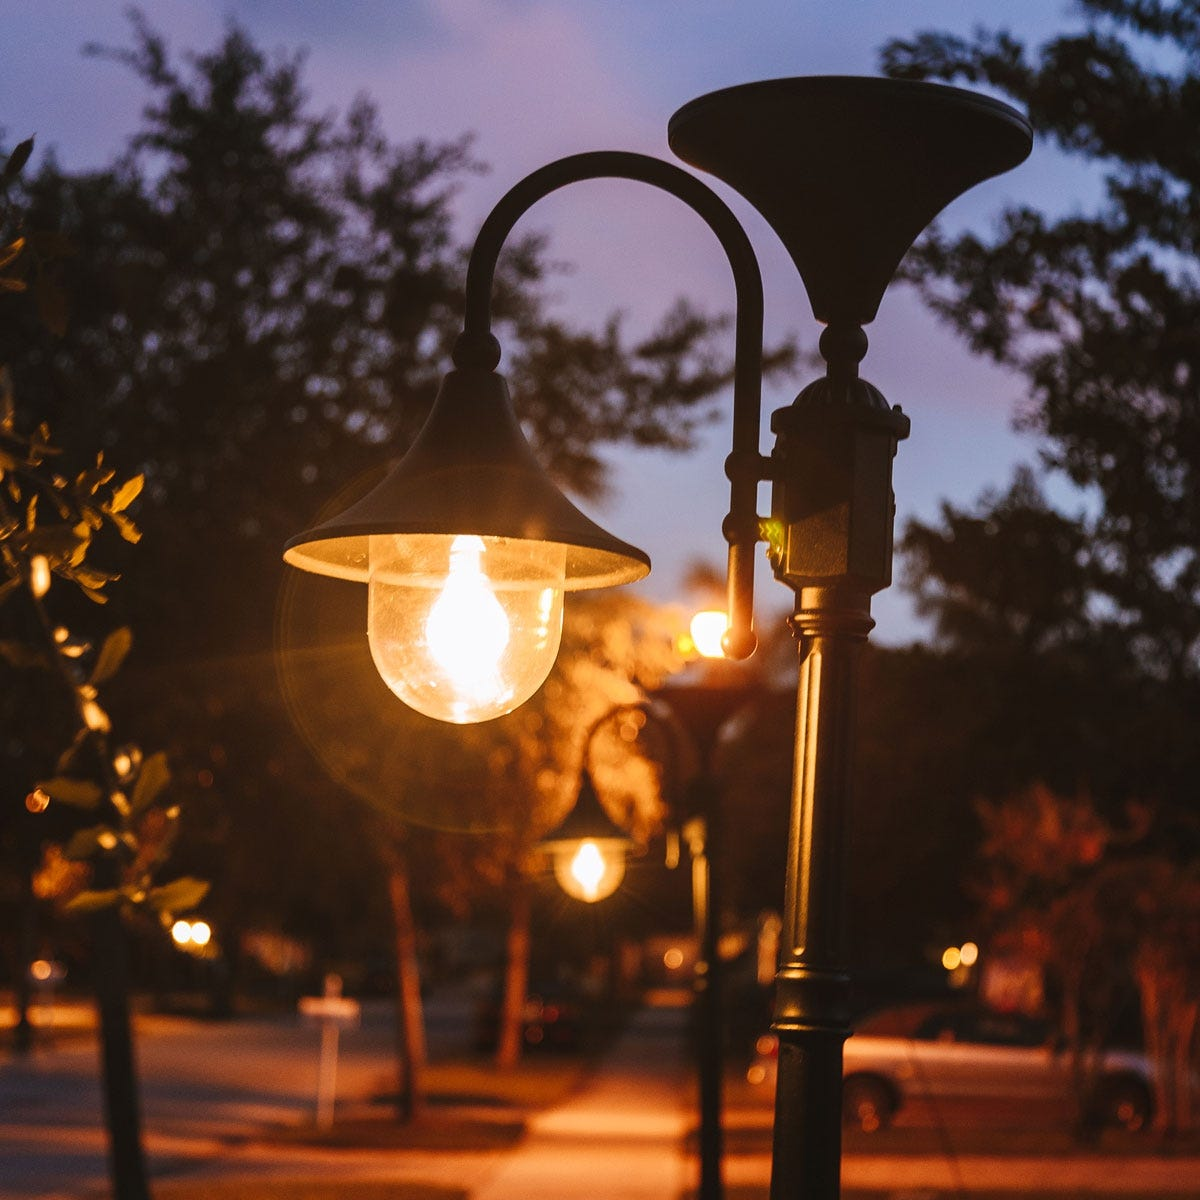 Admirable Shepherds Crook Outdoor Solar Lamp With Post Wiring Digital Resources Instshebarightsorg